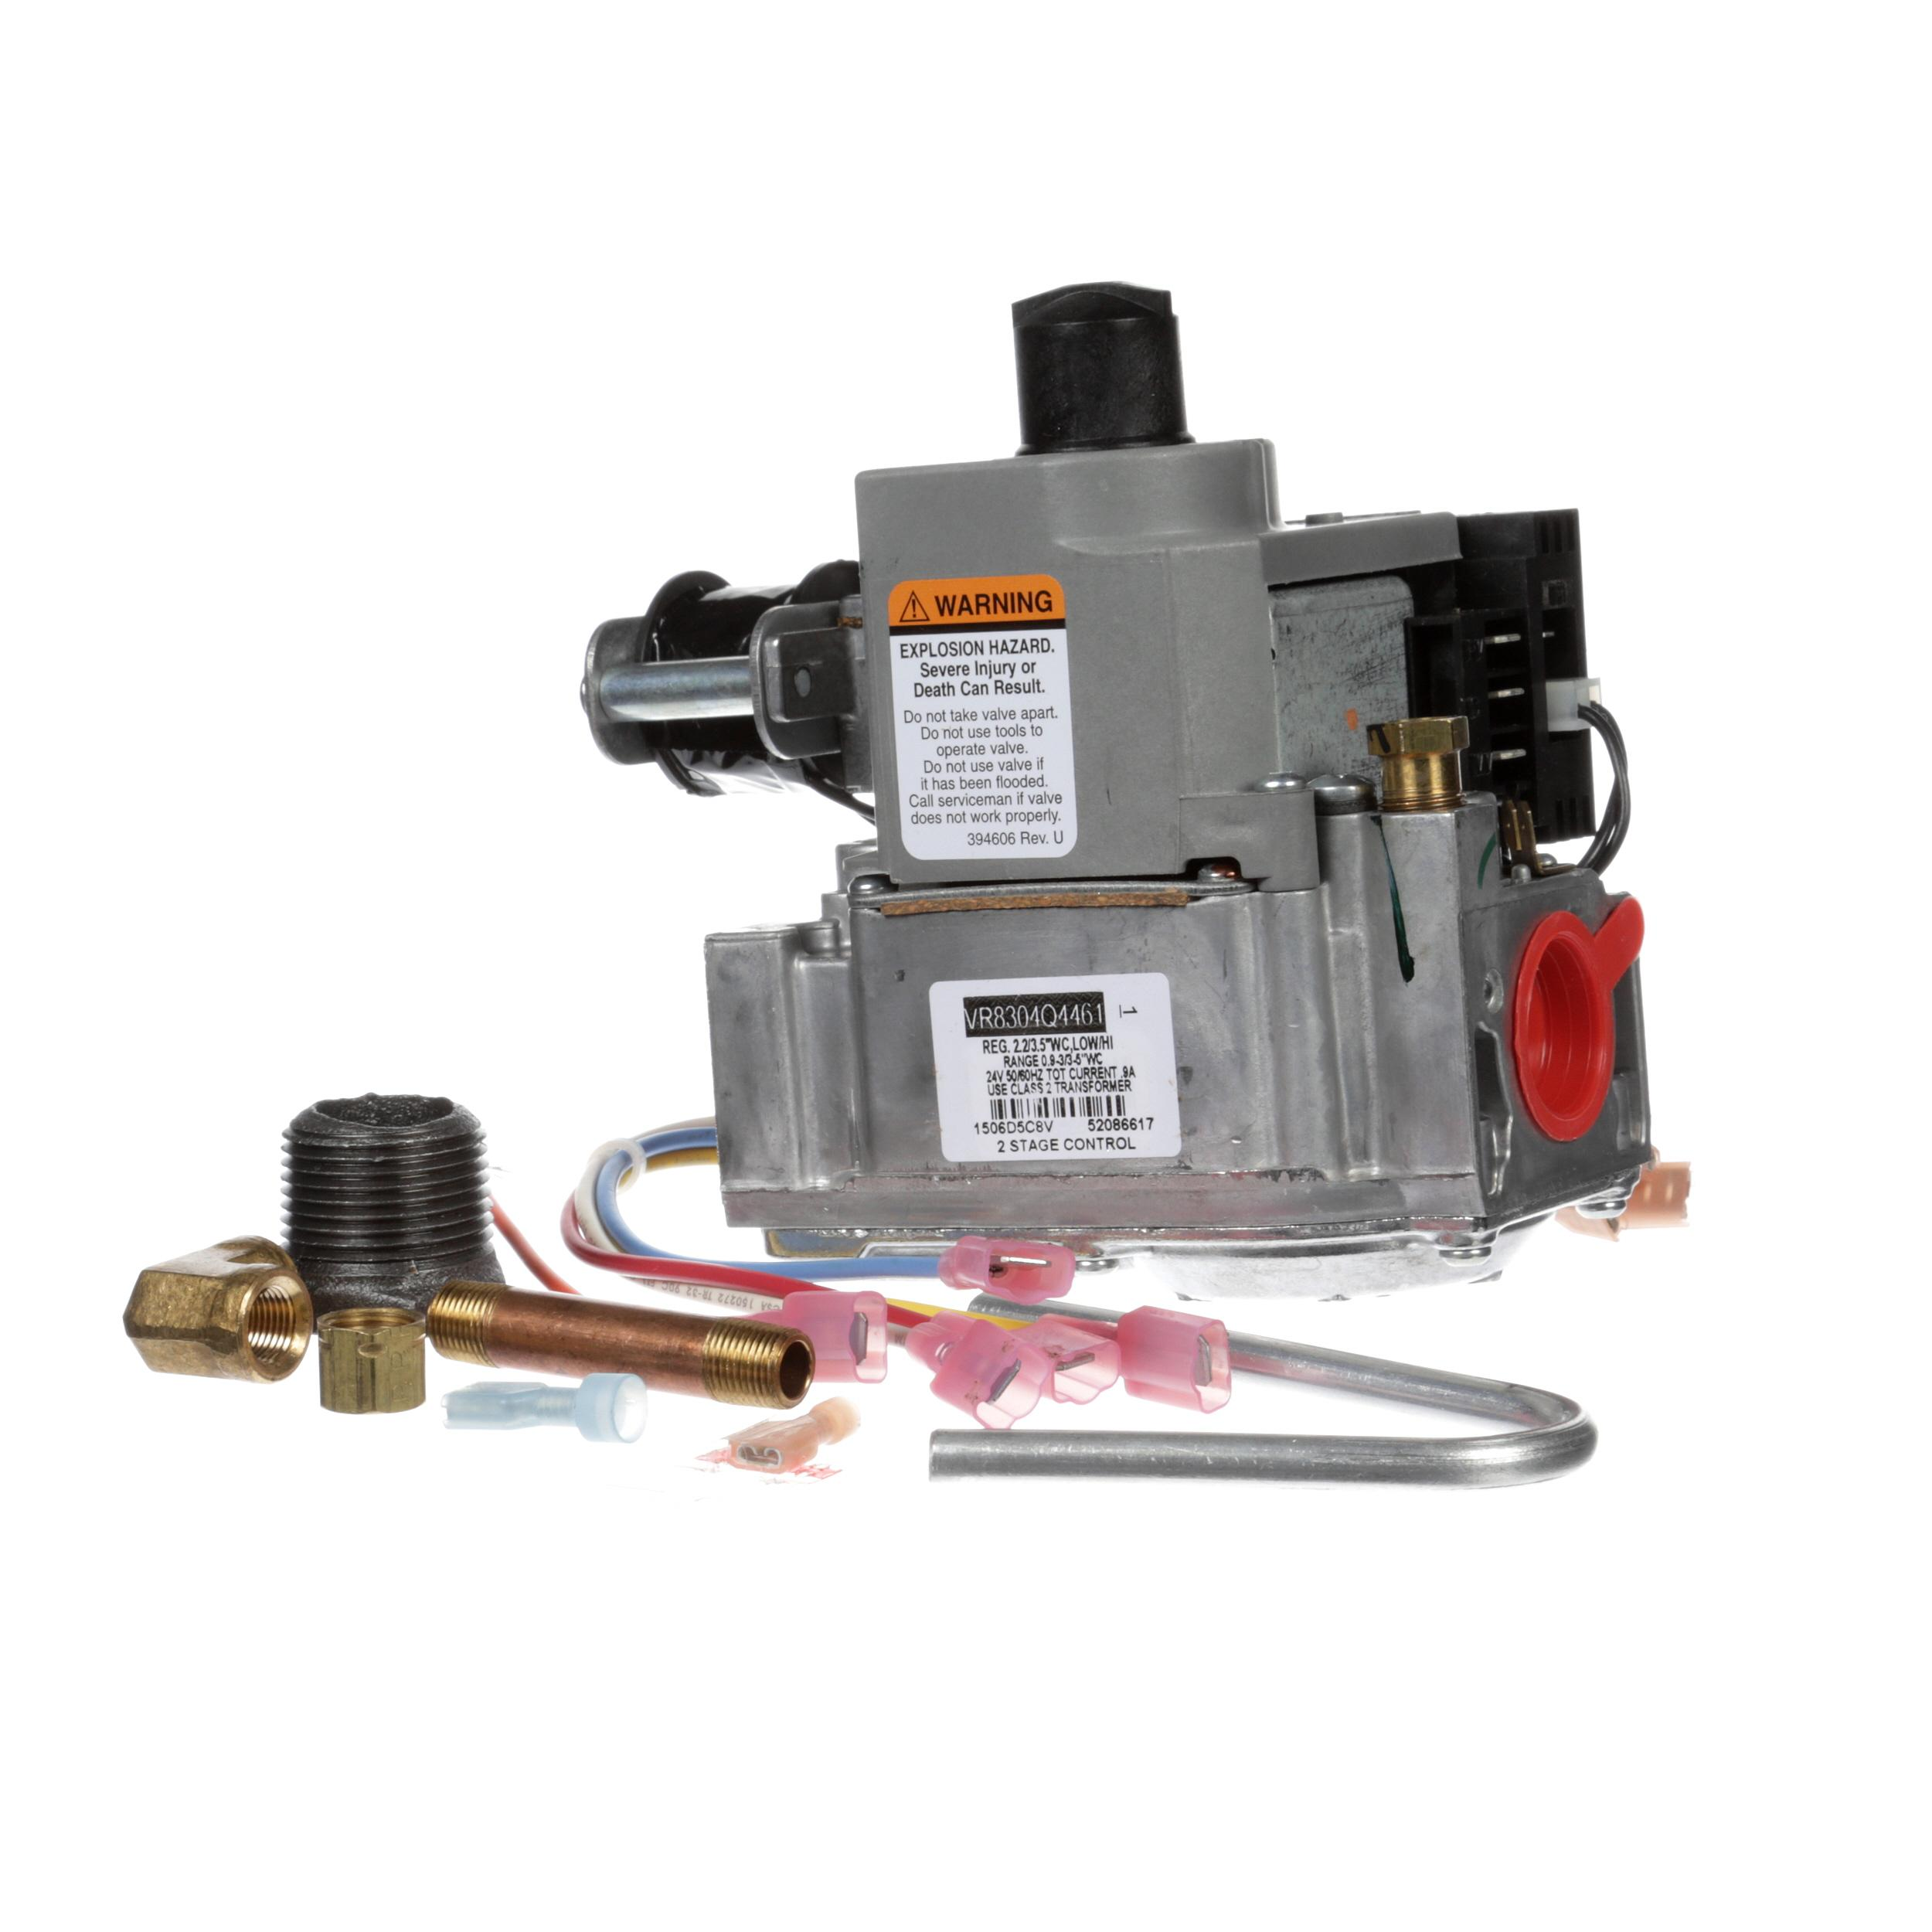 CLEVELAND KIT,REPLACEMENT,2-STAGE GAS VALVE,NAT